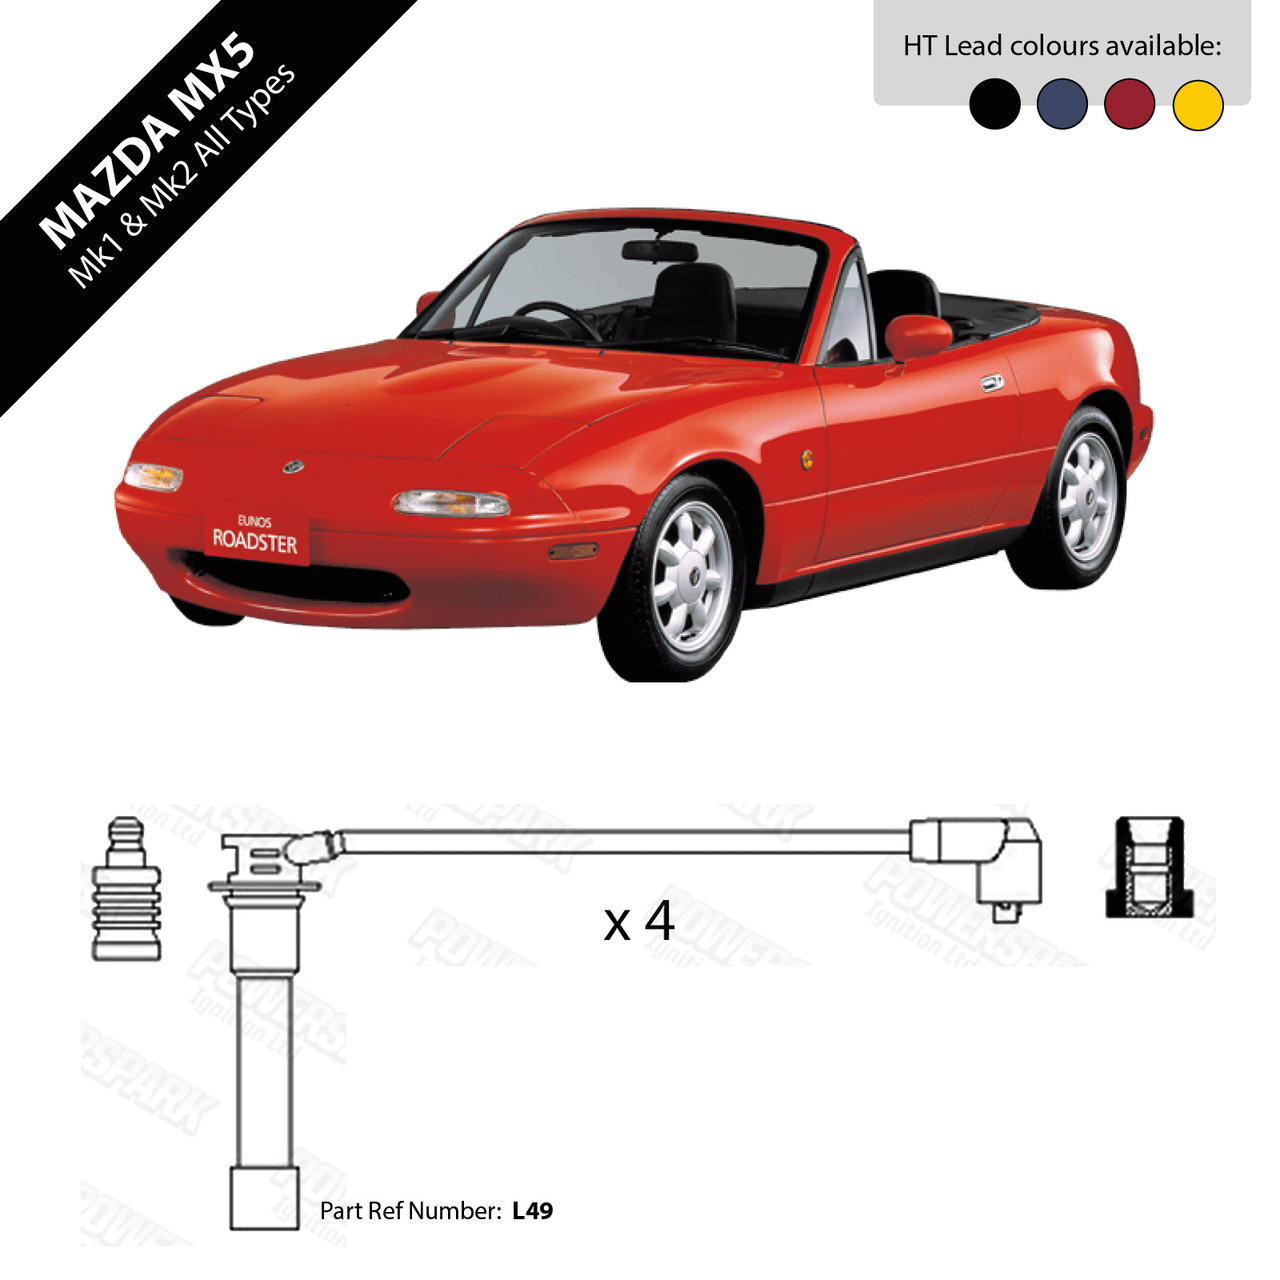 Lucas Mazda MX5 Mk1 and Mk2 HT Leads 7mm